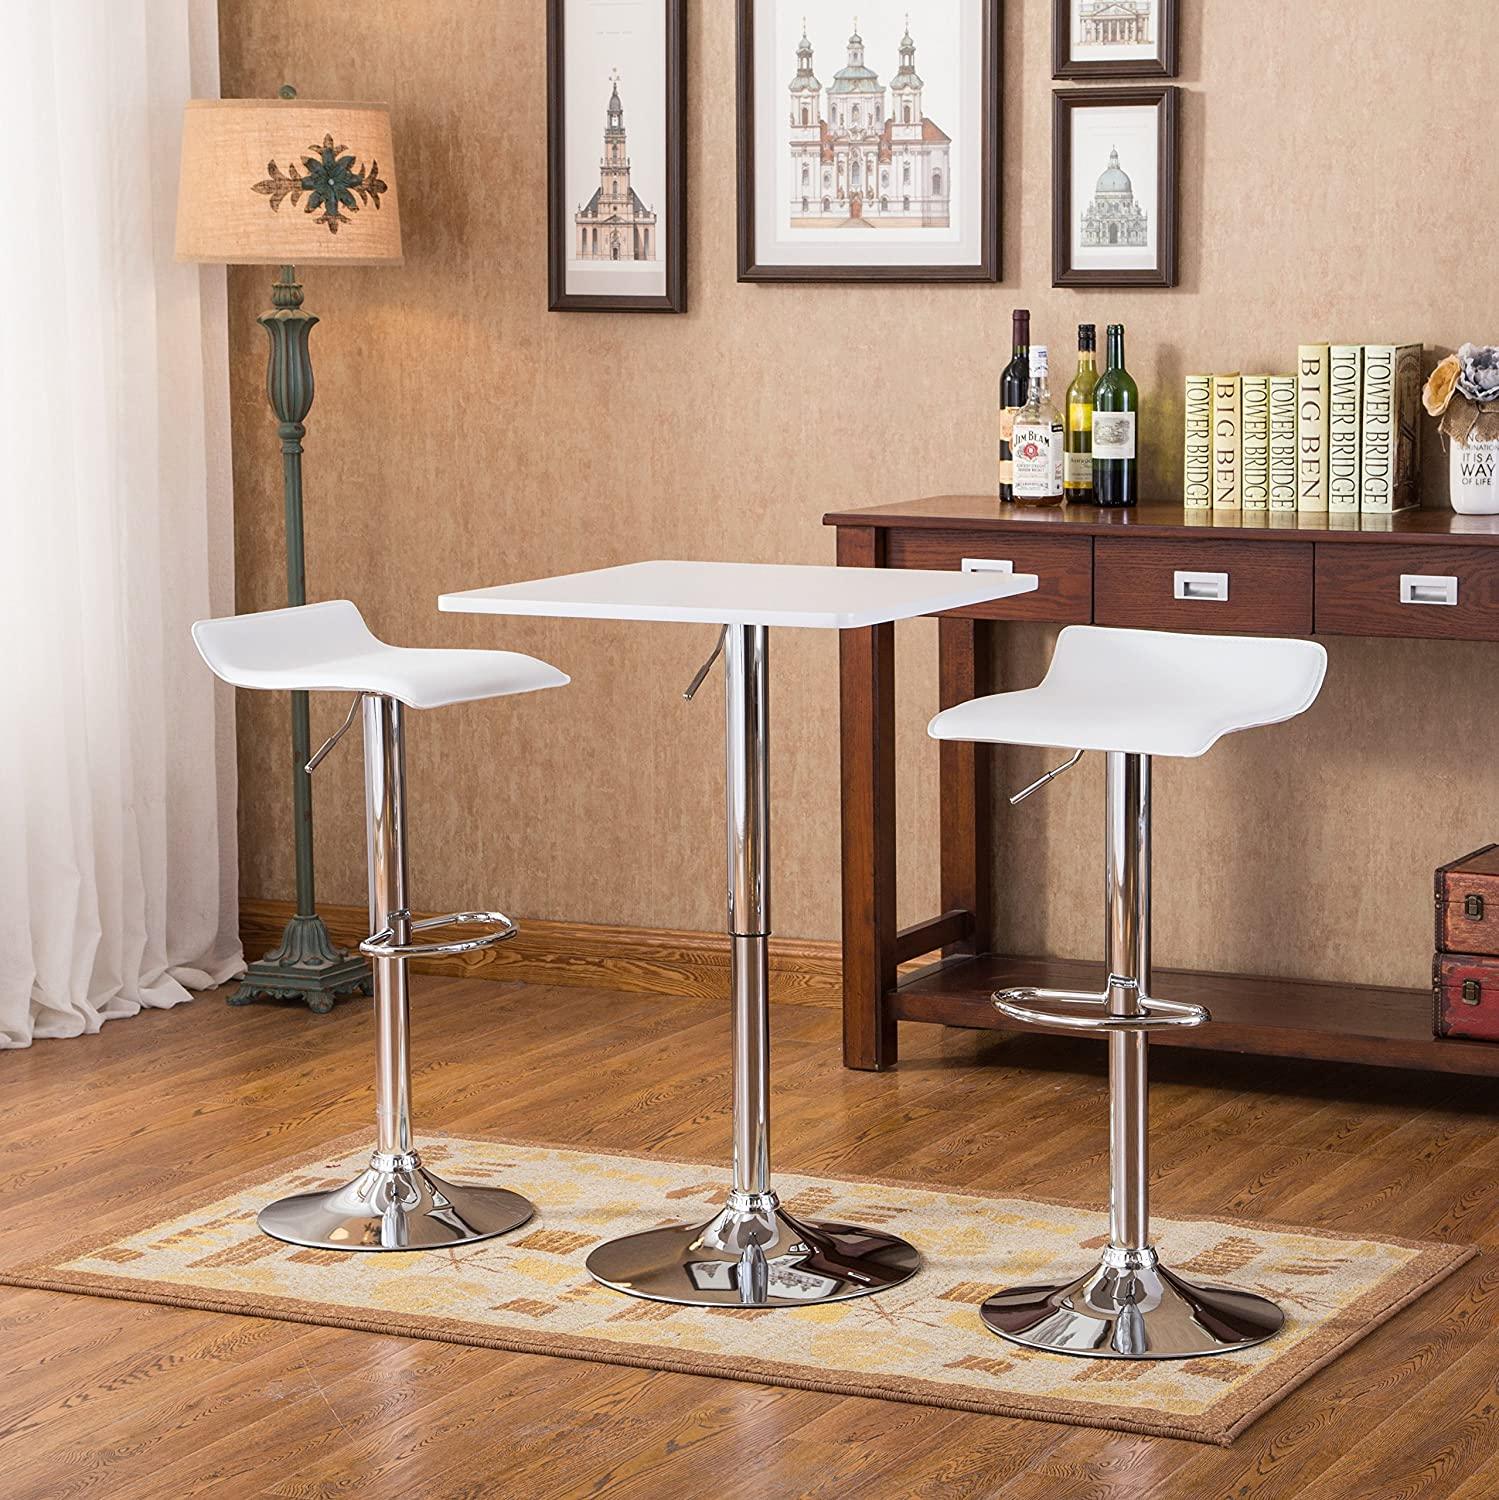 Sensational Roundhill Furniture Baxton White Square Top Adjustable Height Wood Chrome Metal Bar Table 2 Chrome Air Lift Adjustable Swivel Stools Set Theyellowbook Wood Chair Design Ideas Theyellowbookinfo